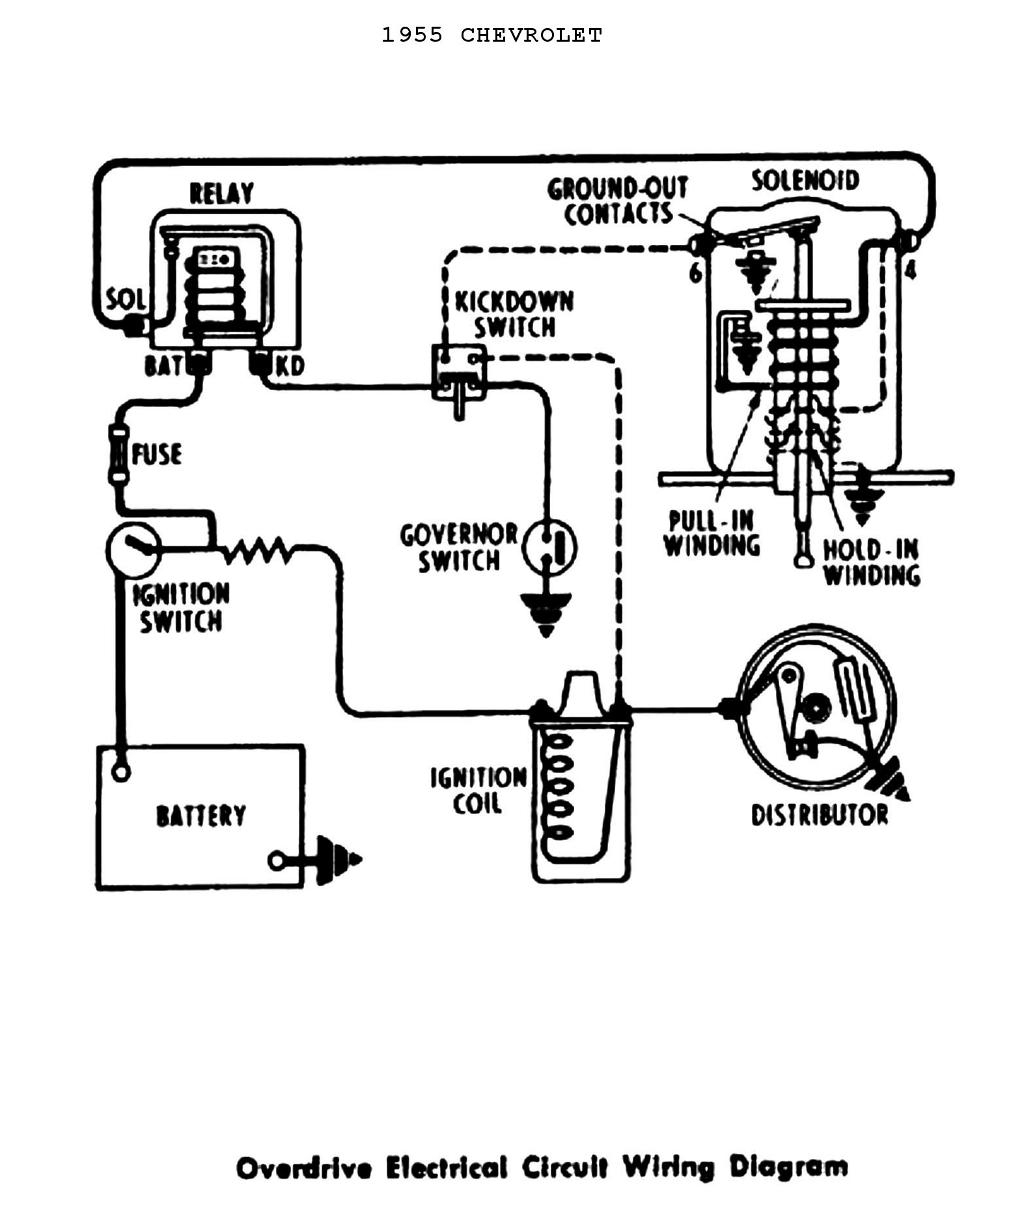 gm hei distributor wiring schematic | free wiring diagram points distributor wiring diagram chevy points distributor wiring #11